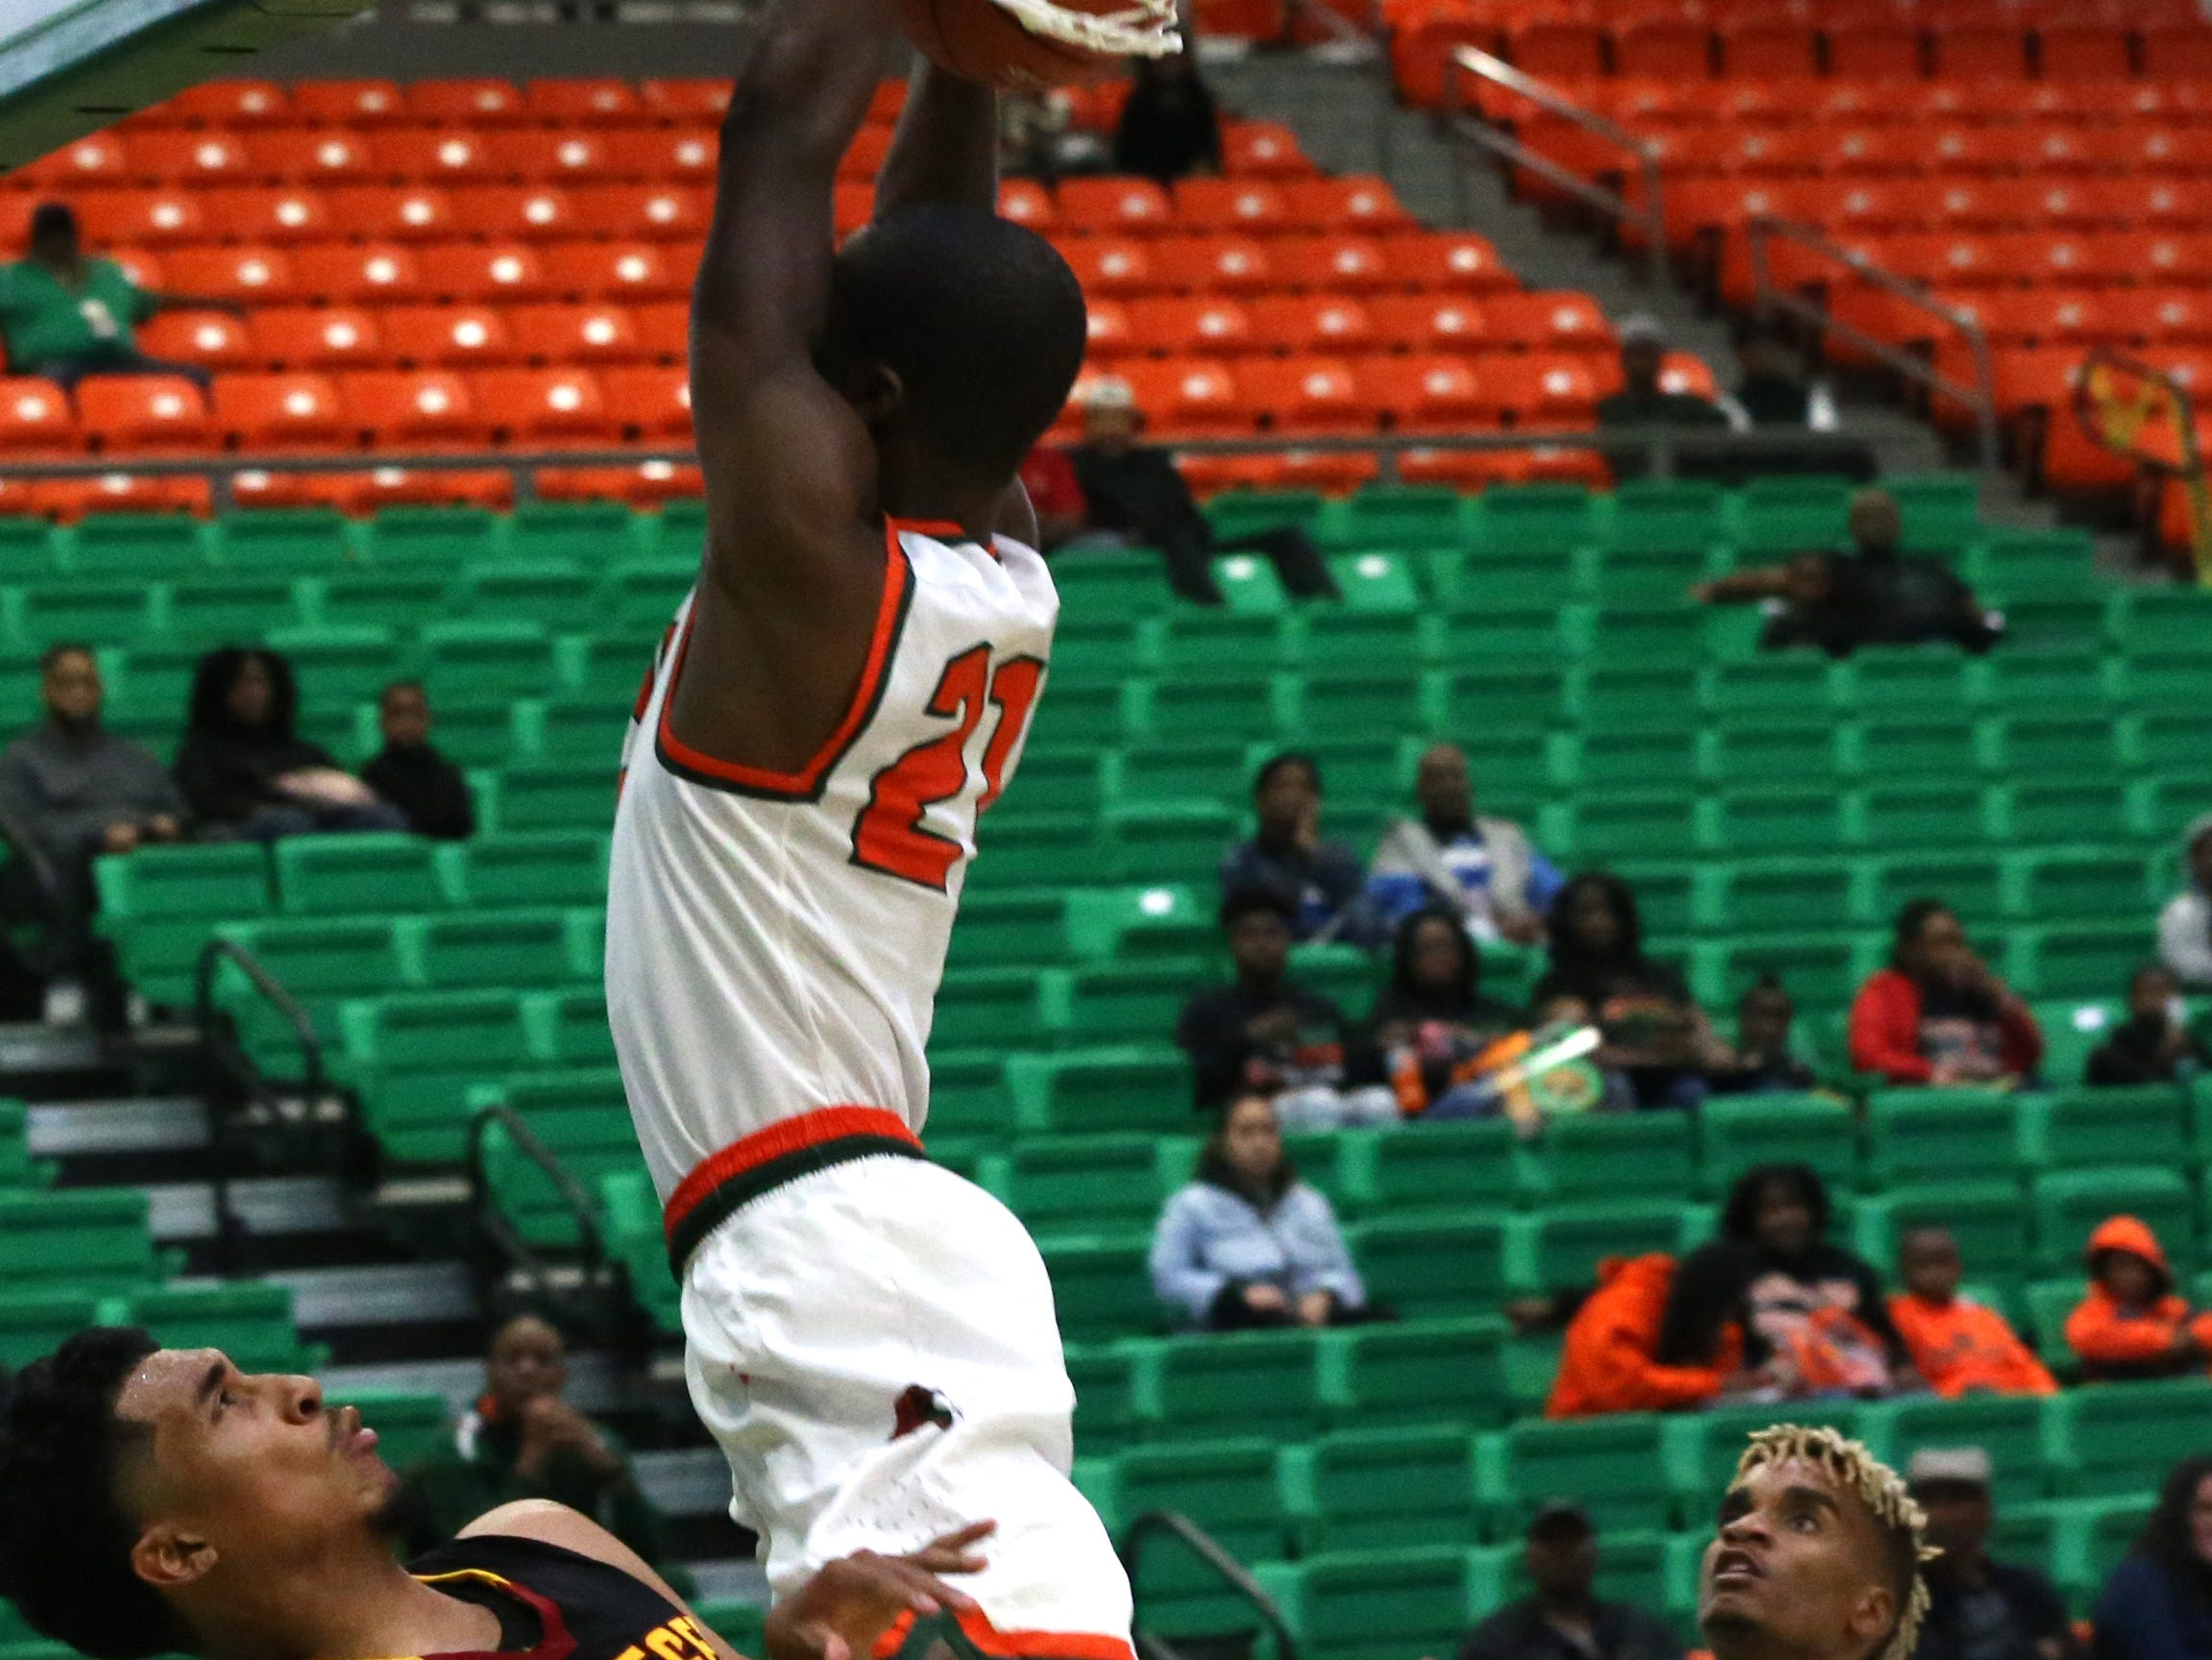 Florida A&M Rattlers guard Justin Ravenel dunks on a Tuskegee's Riley Hamilton in the first home game of the season on Saturday, Nov. 10.